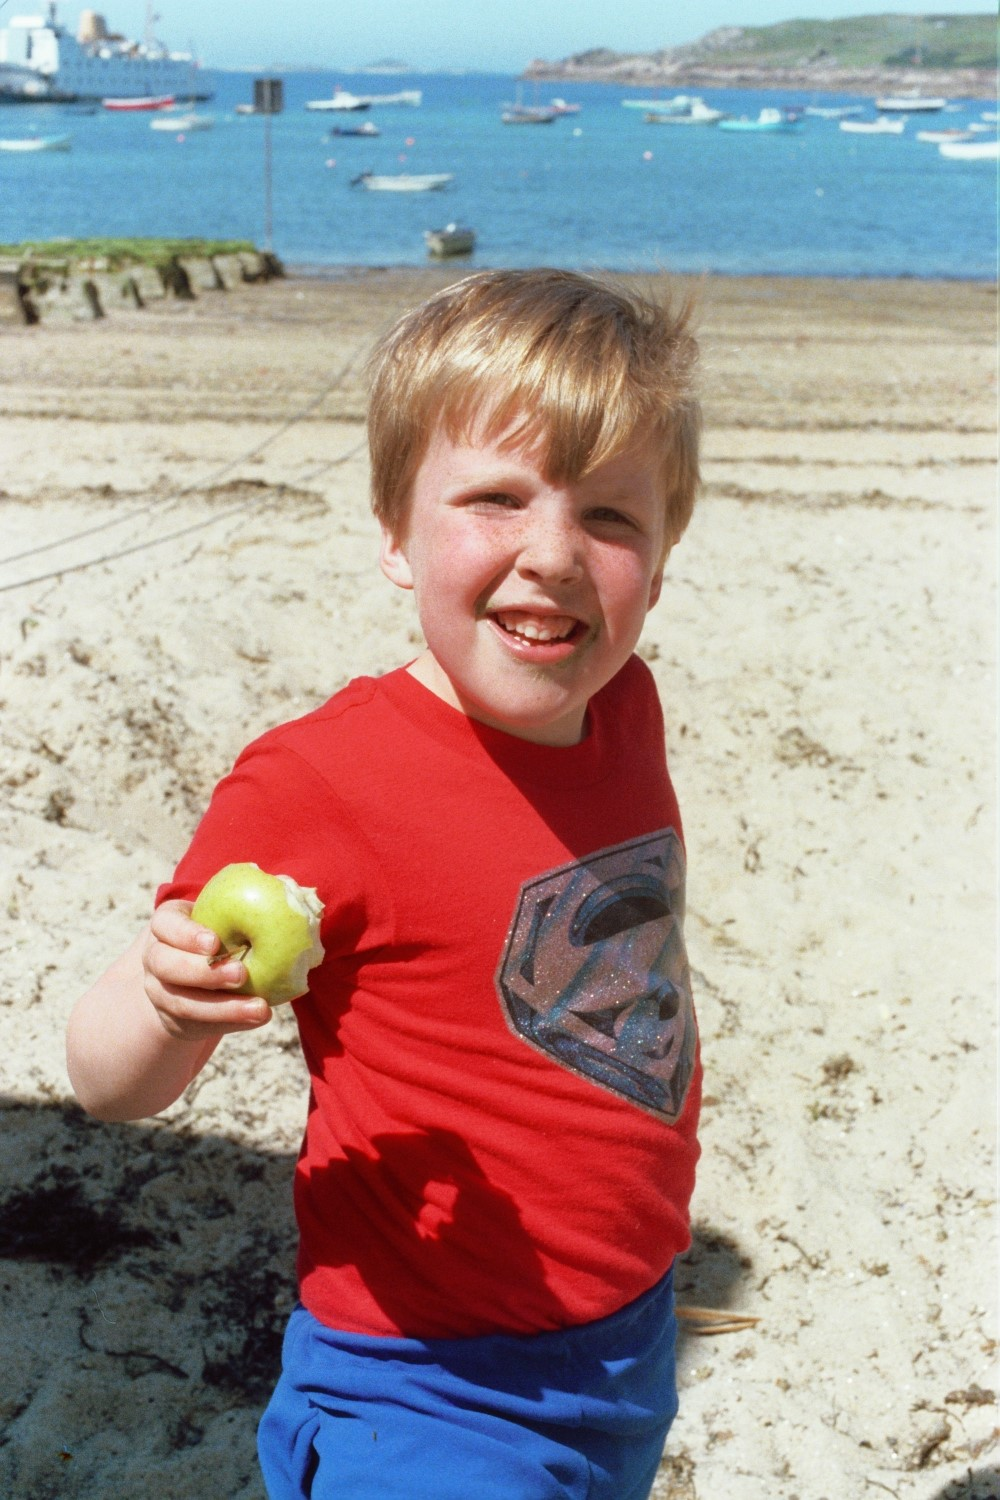 Matt Shearer on the Beach in 1979